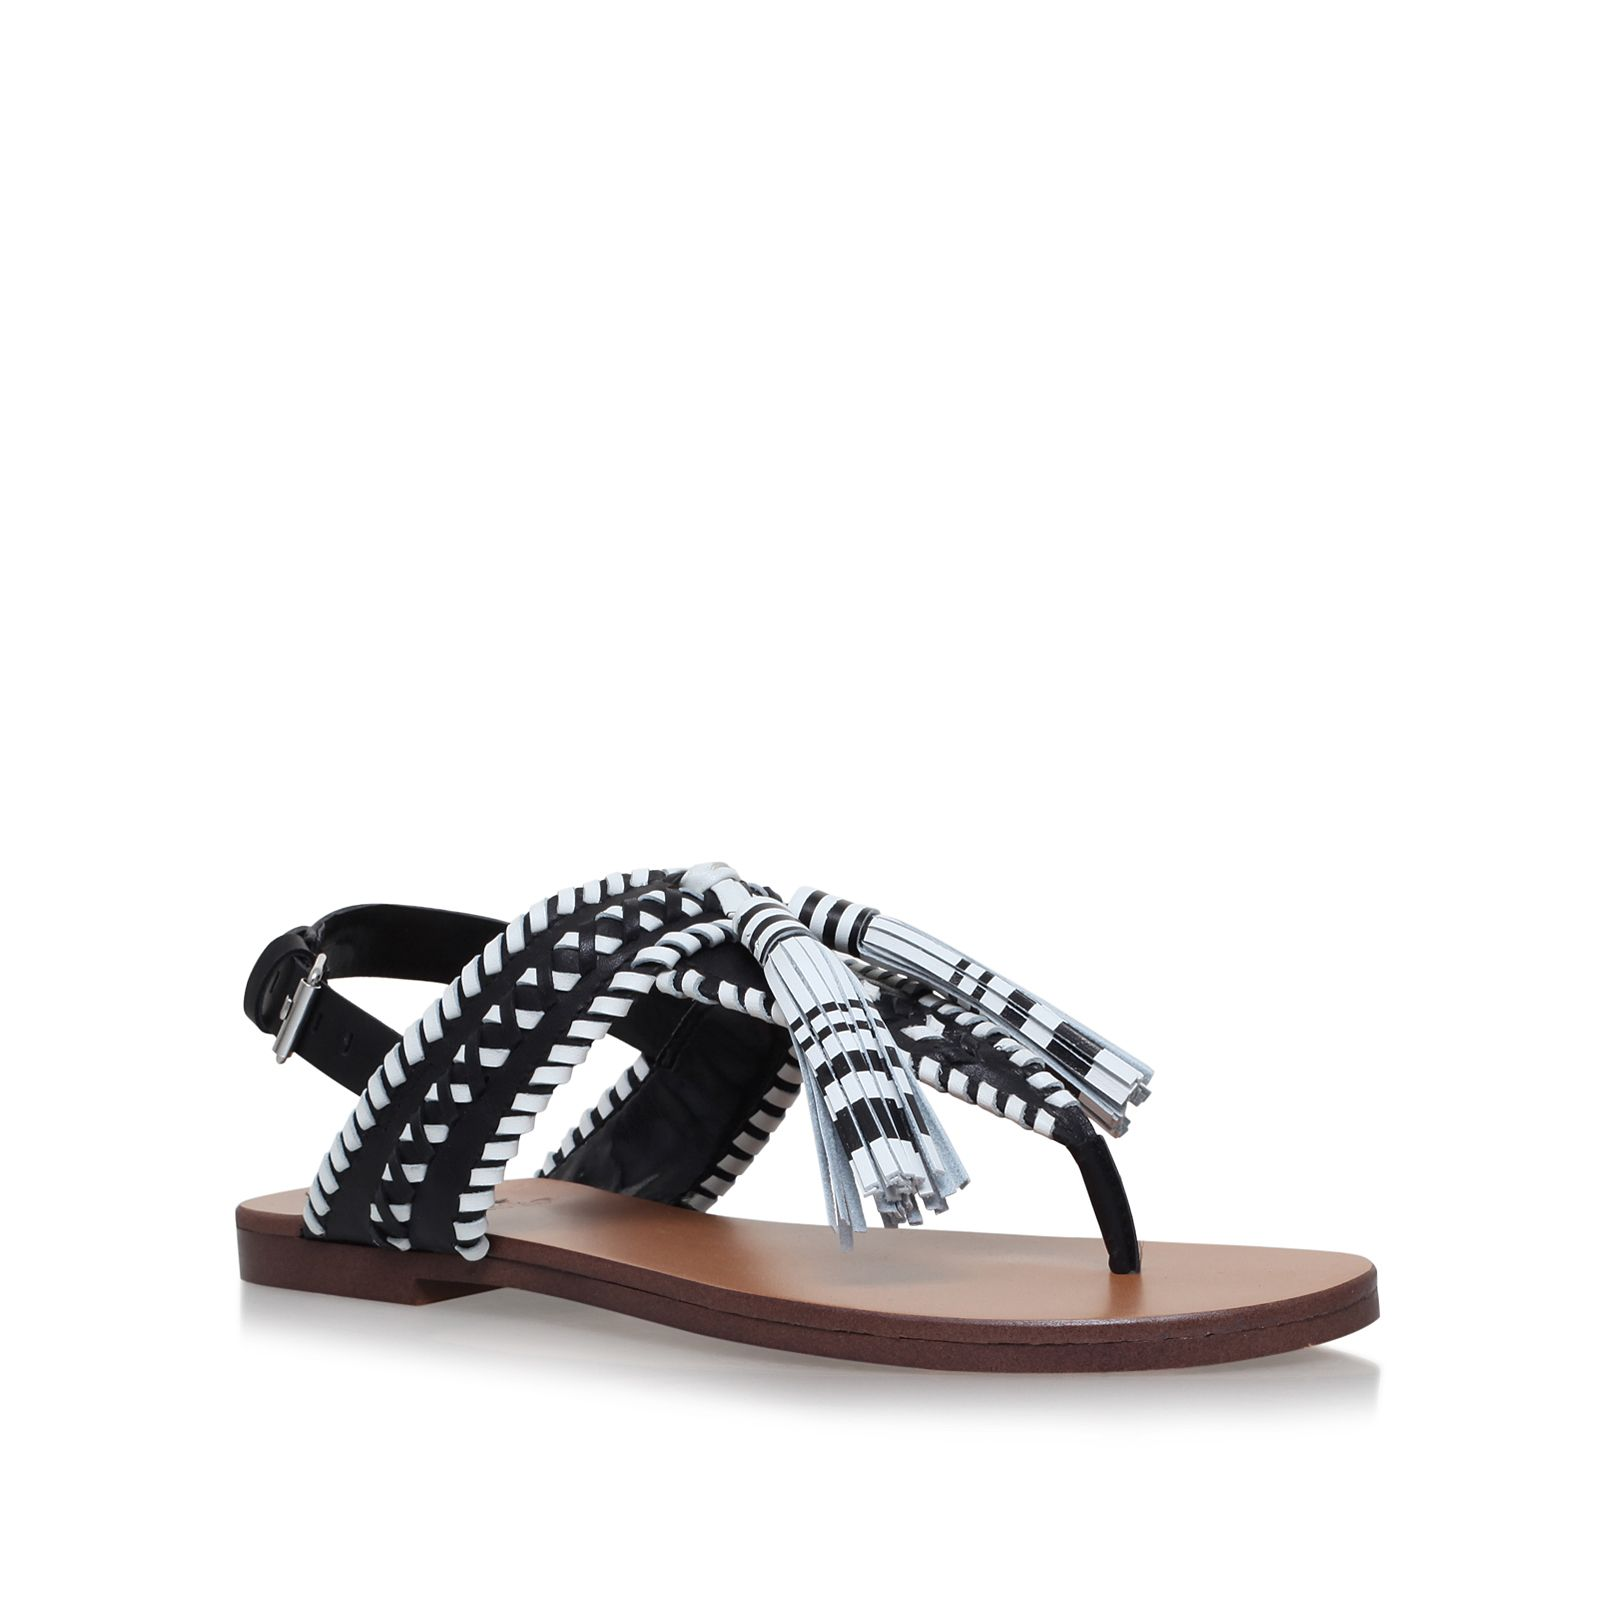 Vince Camuto Rebeka sandals, Black